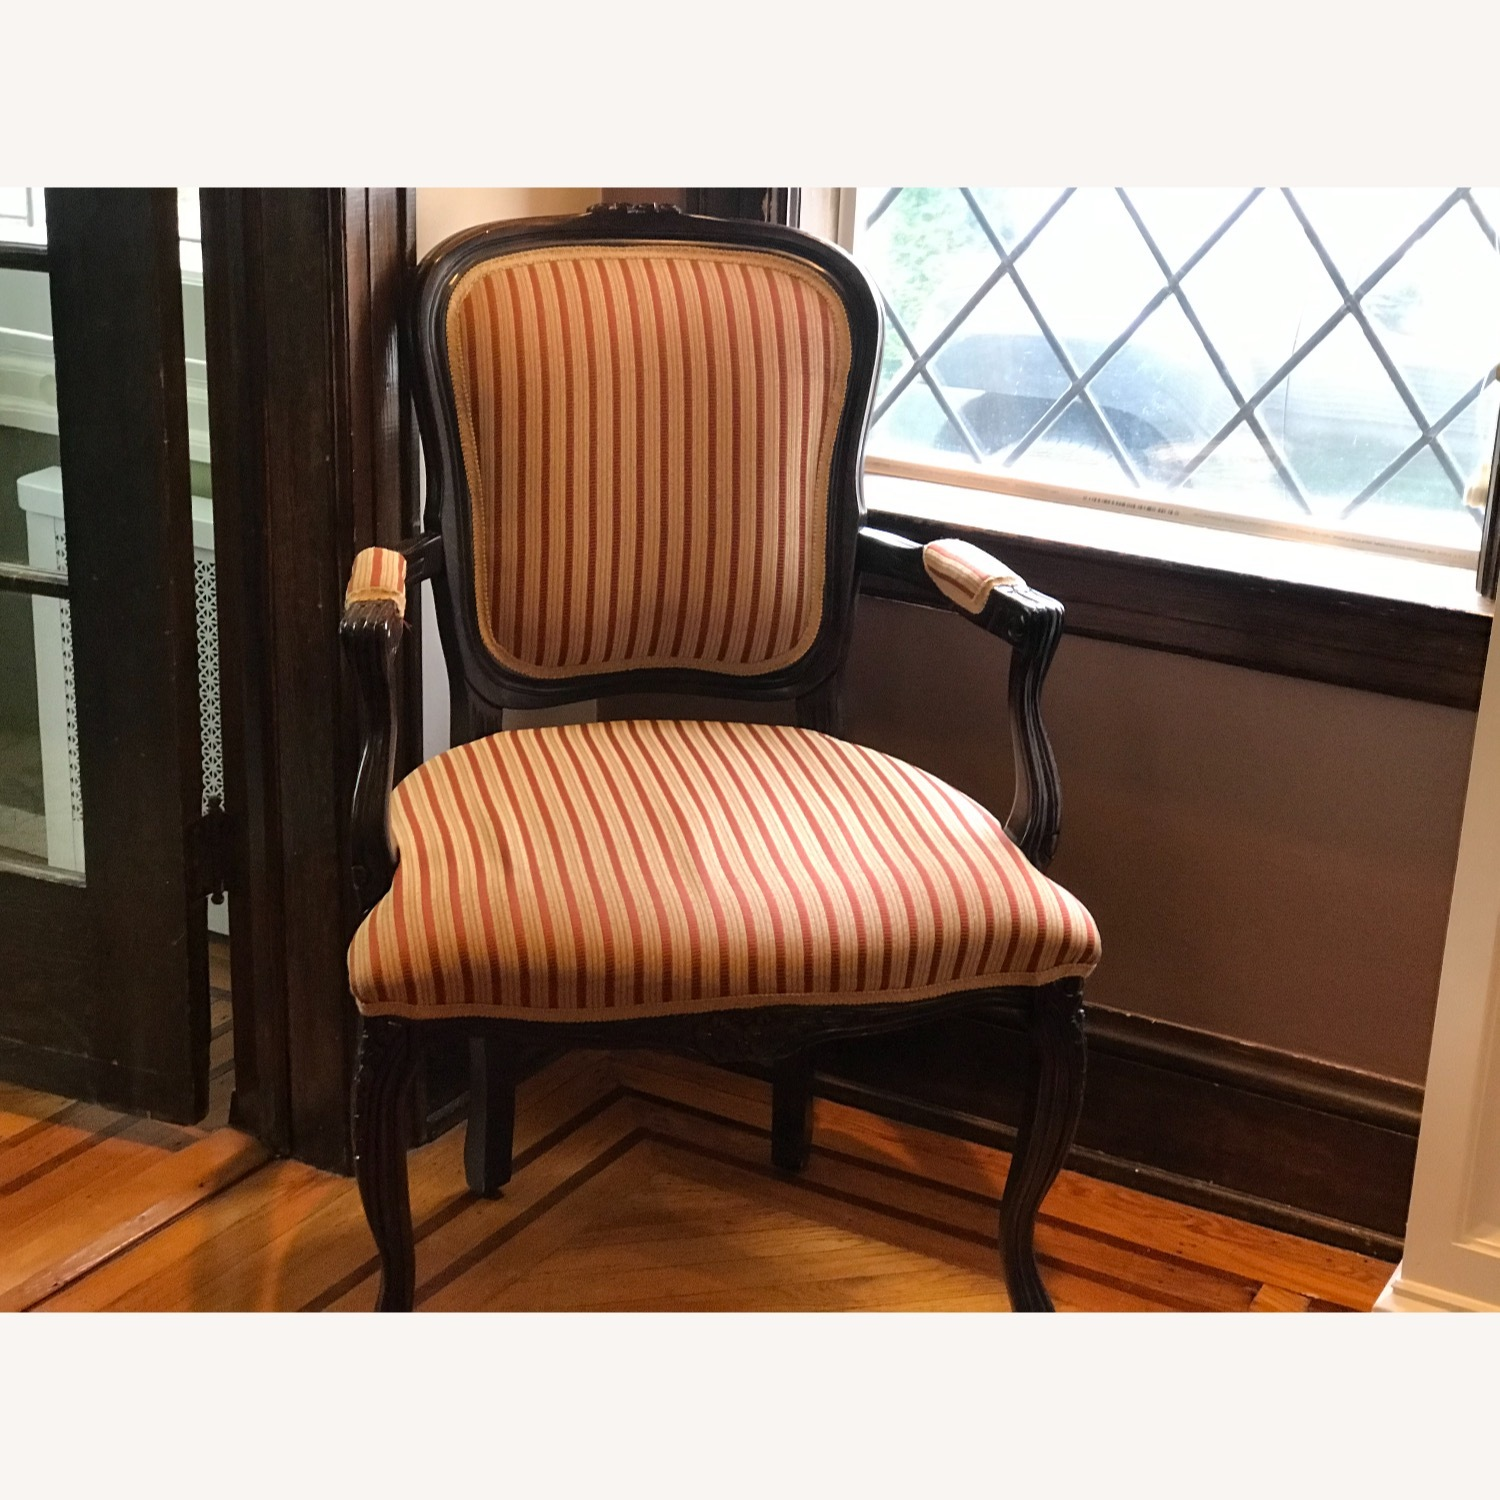 Raymour & Flanigan Striped Accent Chairs - image-2